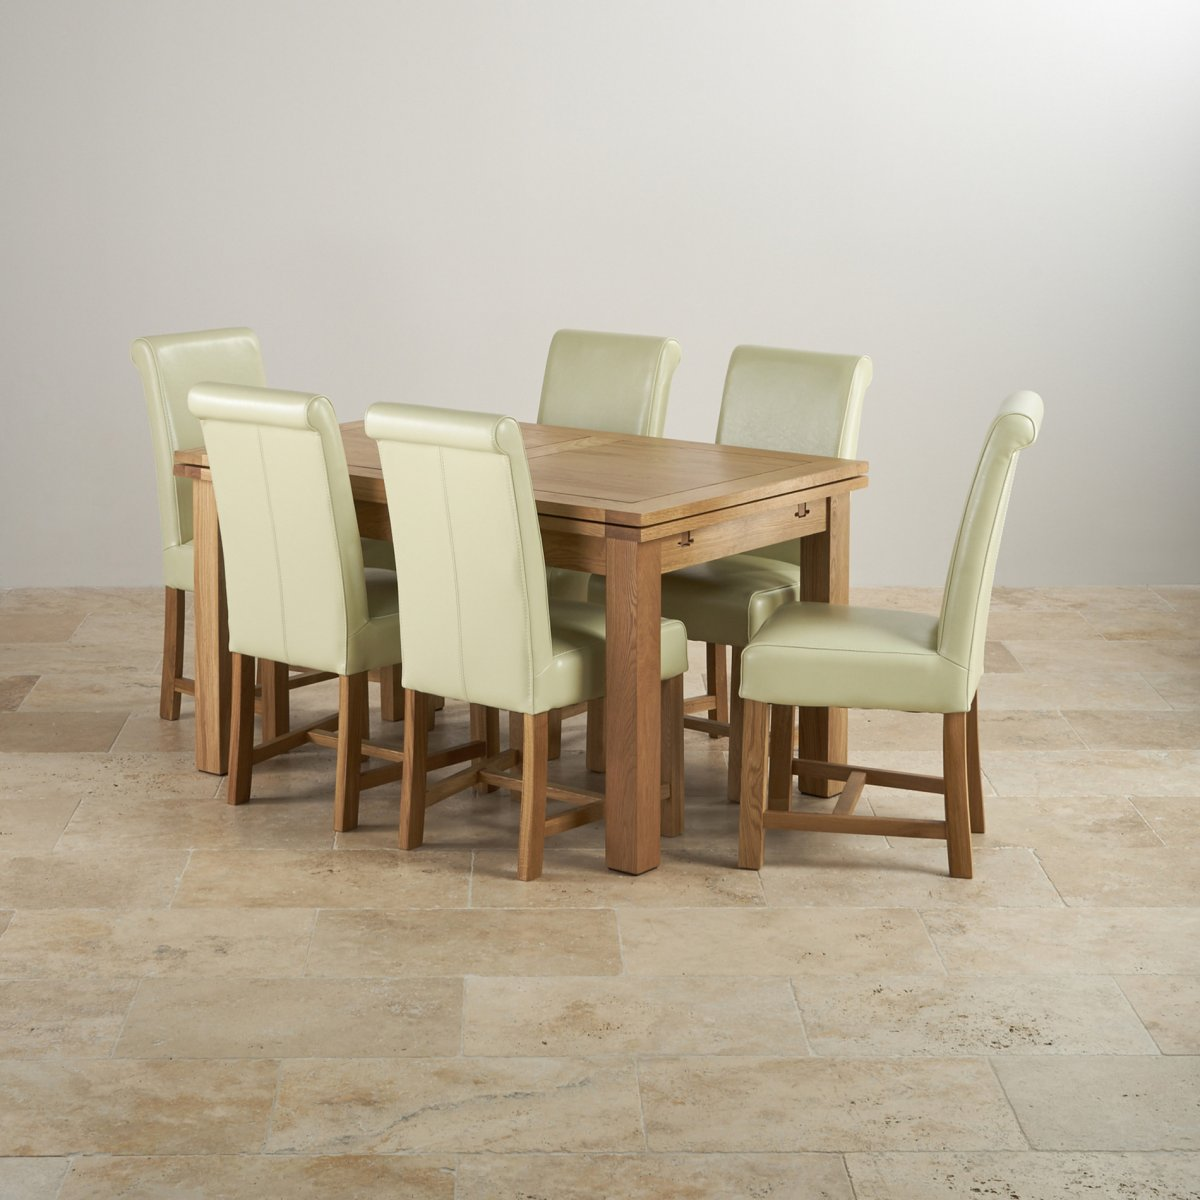 Dorset 4ft 7quot Extending Table 6 Cream Leather Chairs : dorset natural solid oak dining set 4ft 7 extending table with 6 braced scroll back cream leather chairs 56f52b8b9ae437f1878646350552054483287bc8fa156 from oakfurnitureland.co.uk size 1200 x 1200 jpeg 142kB